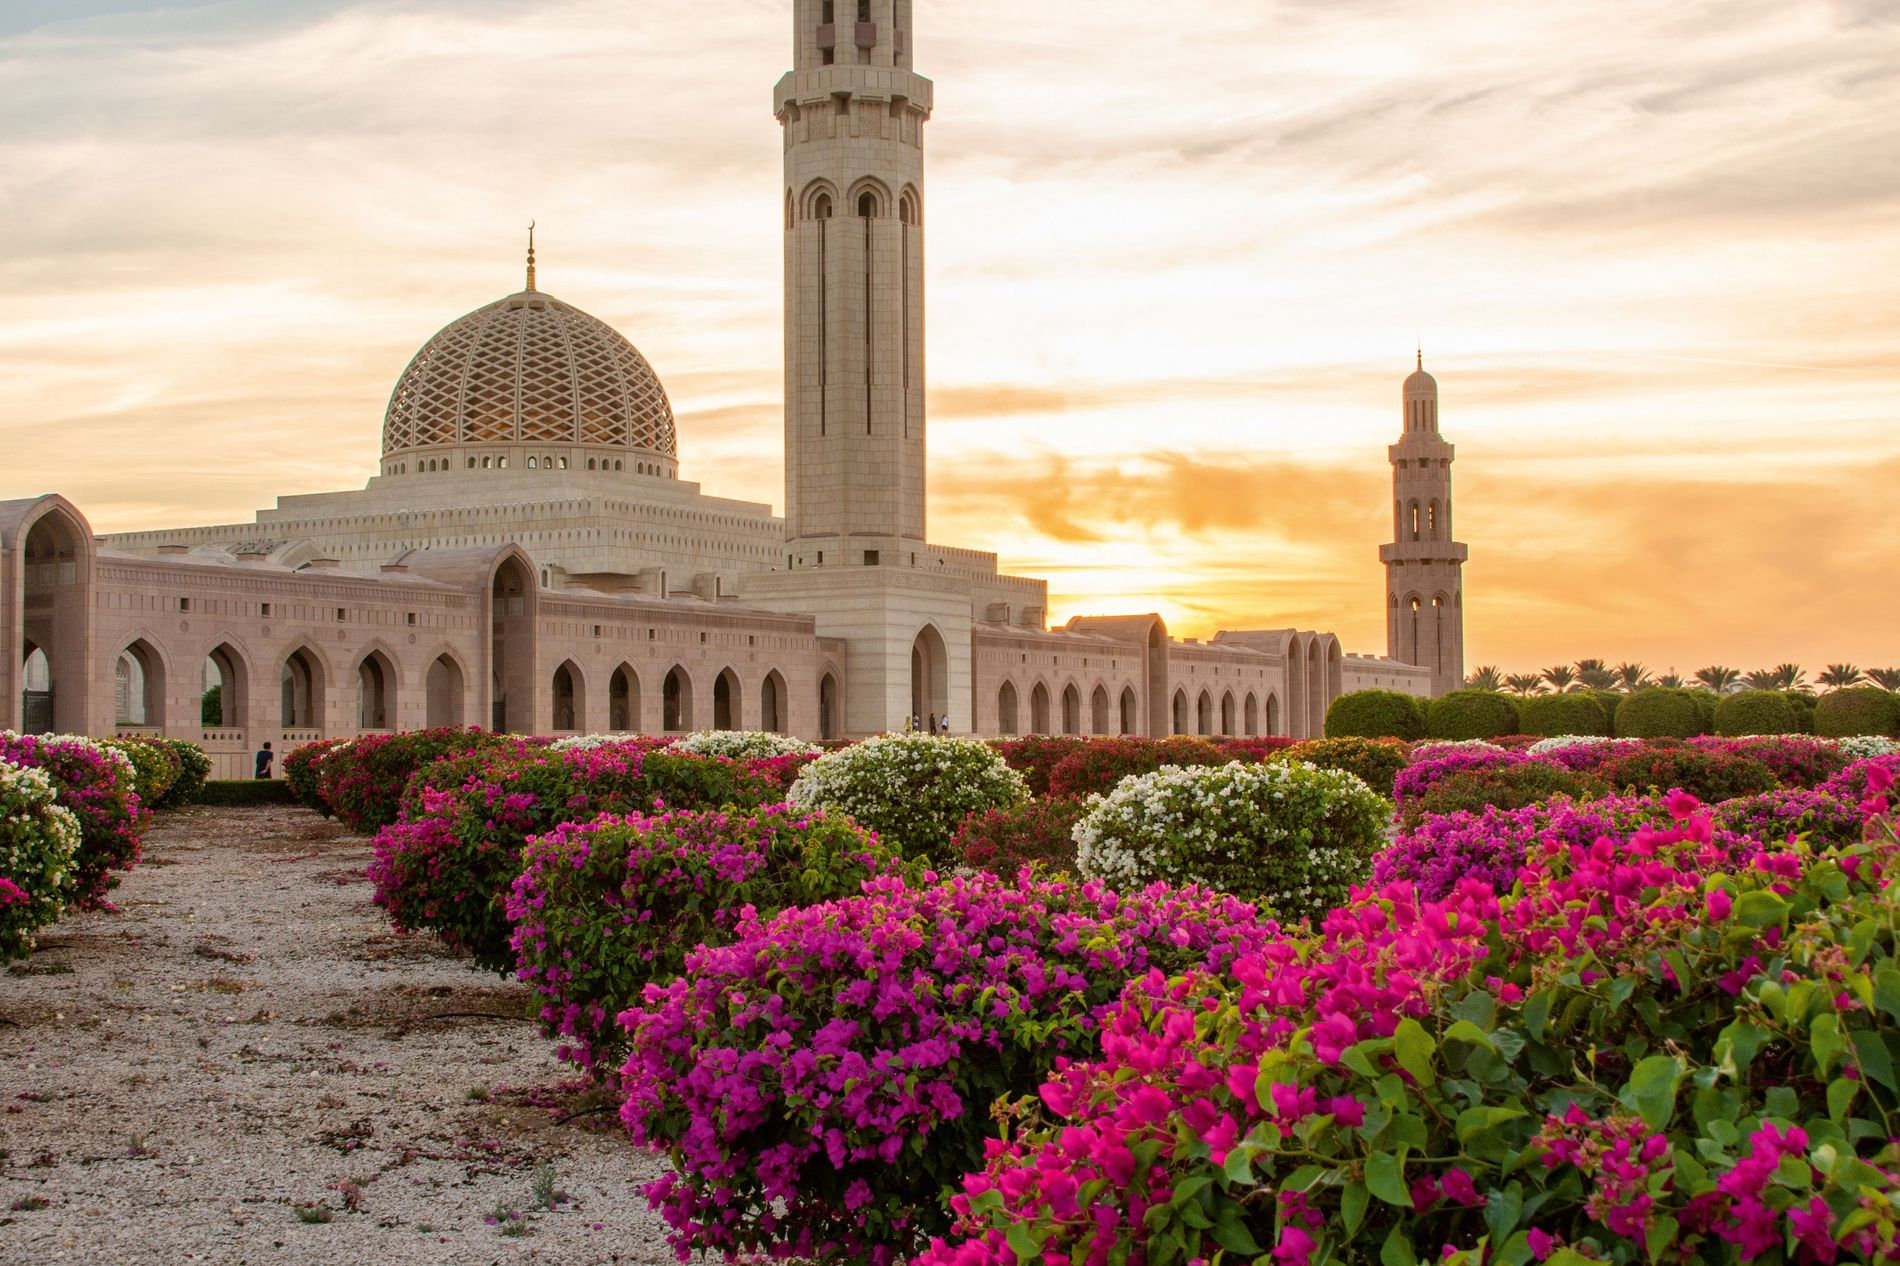 When it comes to hotels, this swathe of the Middle East tends to be associated with ...